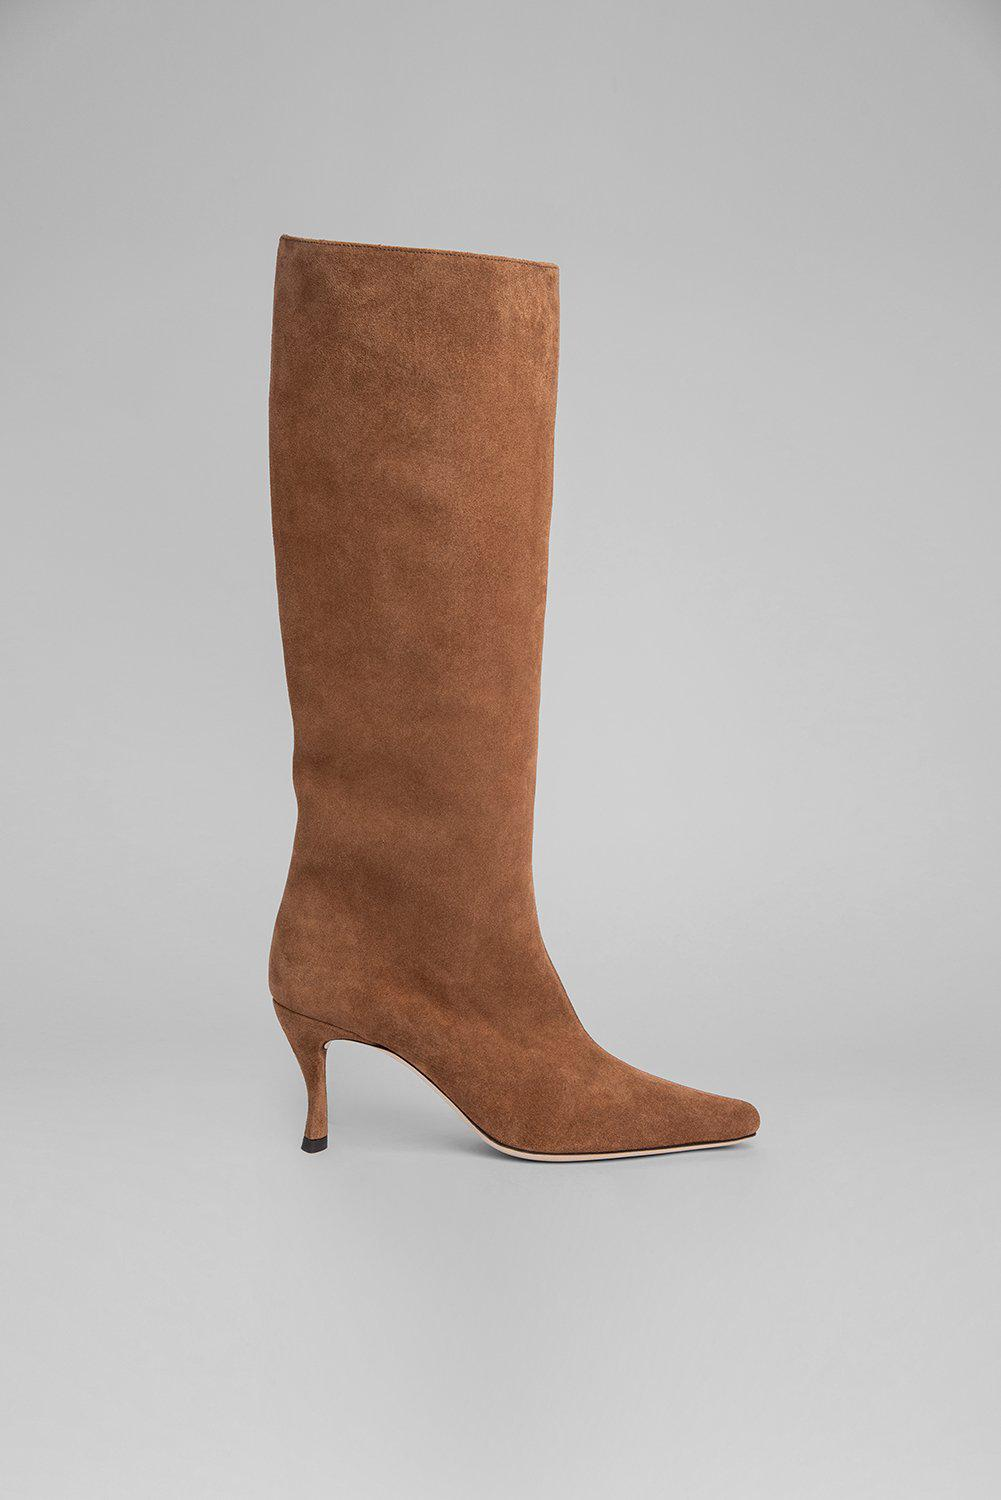 Stevie 42 Brown Suede Leather